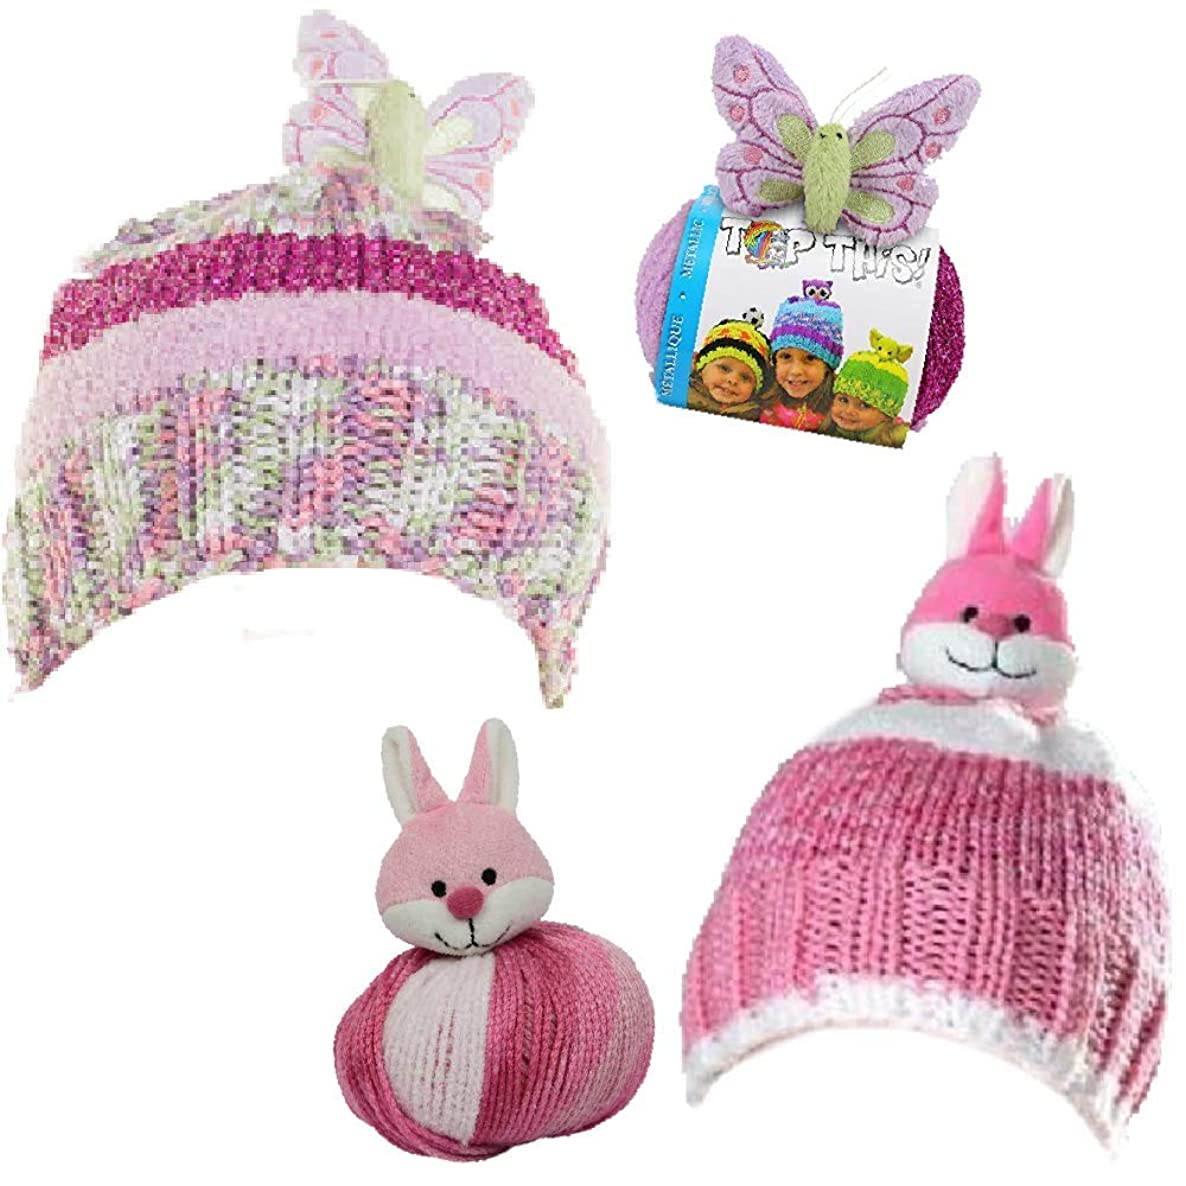 2 Yarn Making Hats Kits Bundle: DMC-Top This! - Bunny and Metallic Butterfly